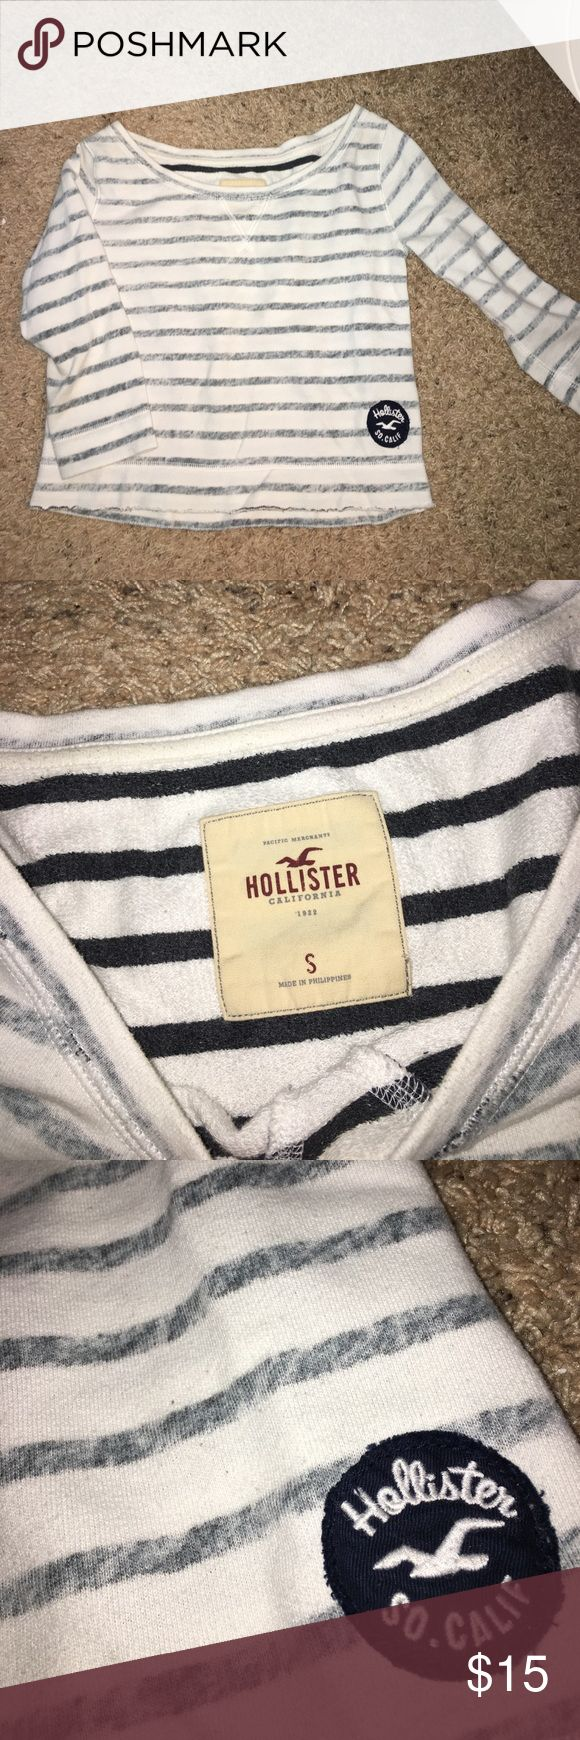 Spotted while shopping on Poshmark: Hollister crew sweatshirt! #poshmark #fashion #shopping #style #Hollister #Tops